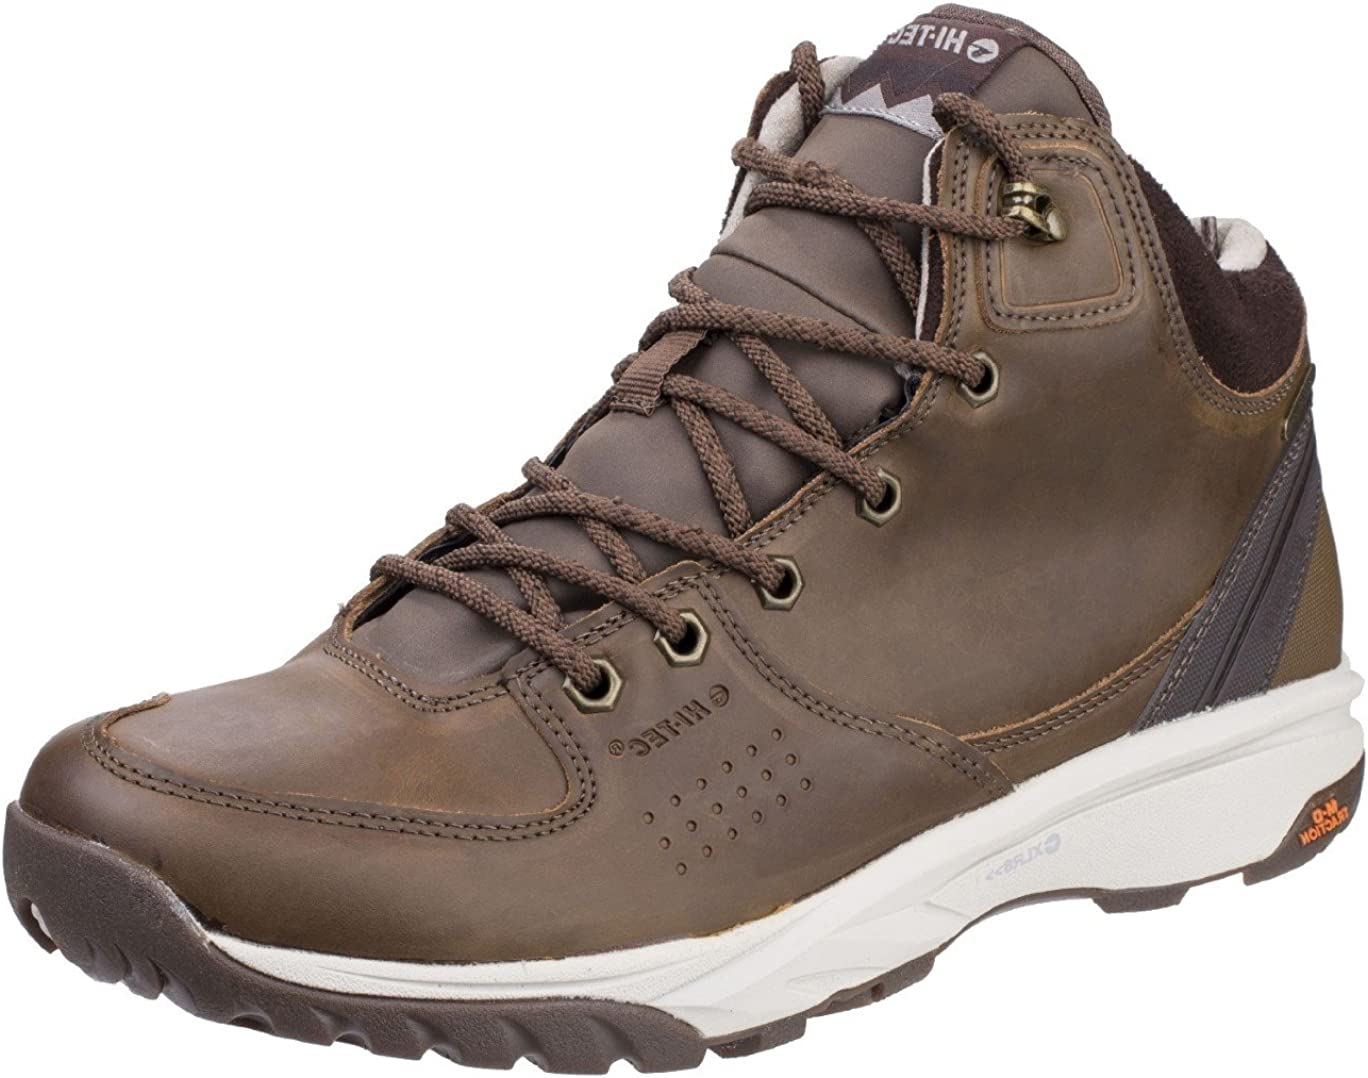 Hi-Tec Wild-Life Lux I Waterproof Brown Walking 9 Purchase - Boots Max 70% OFF